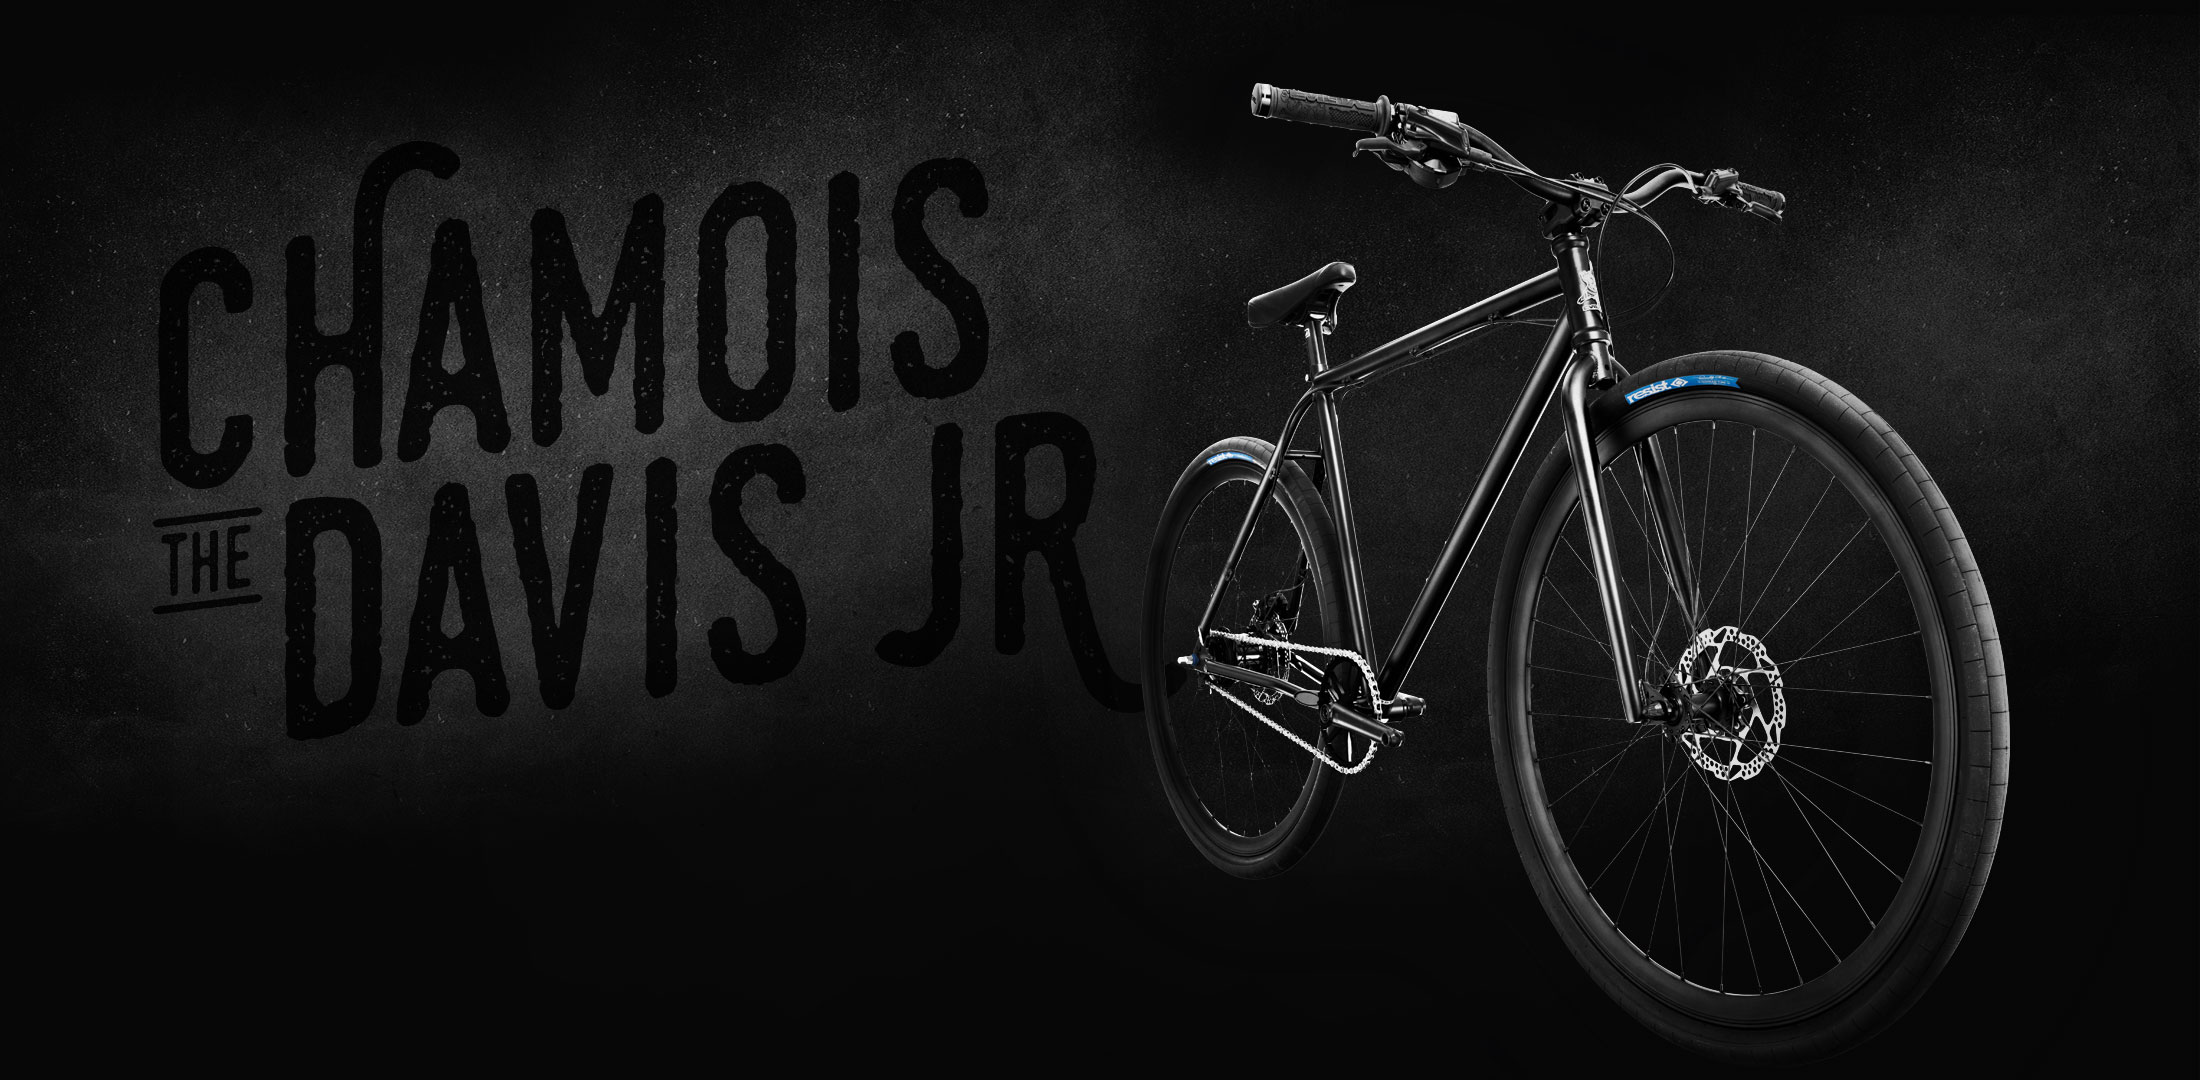 evil-chamois-davis-jr-bike-hero-2200x1080